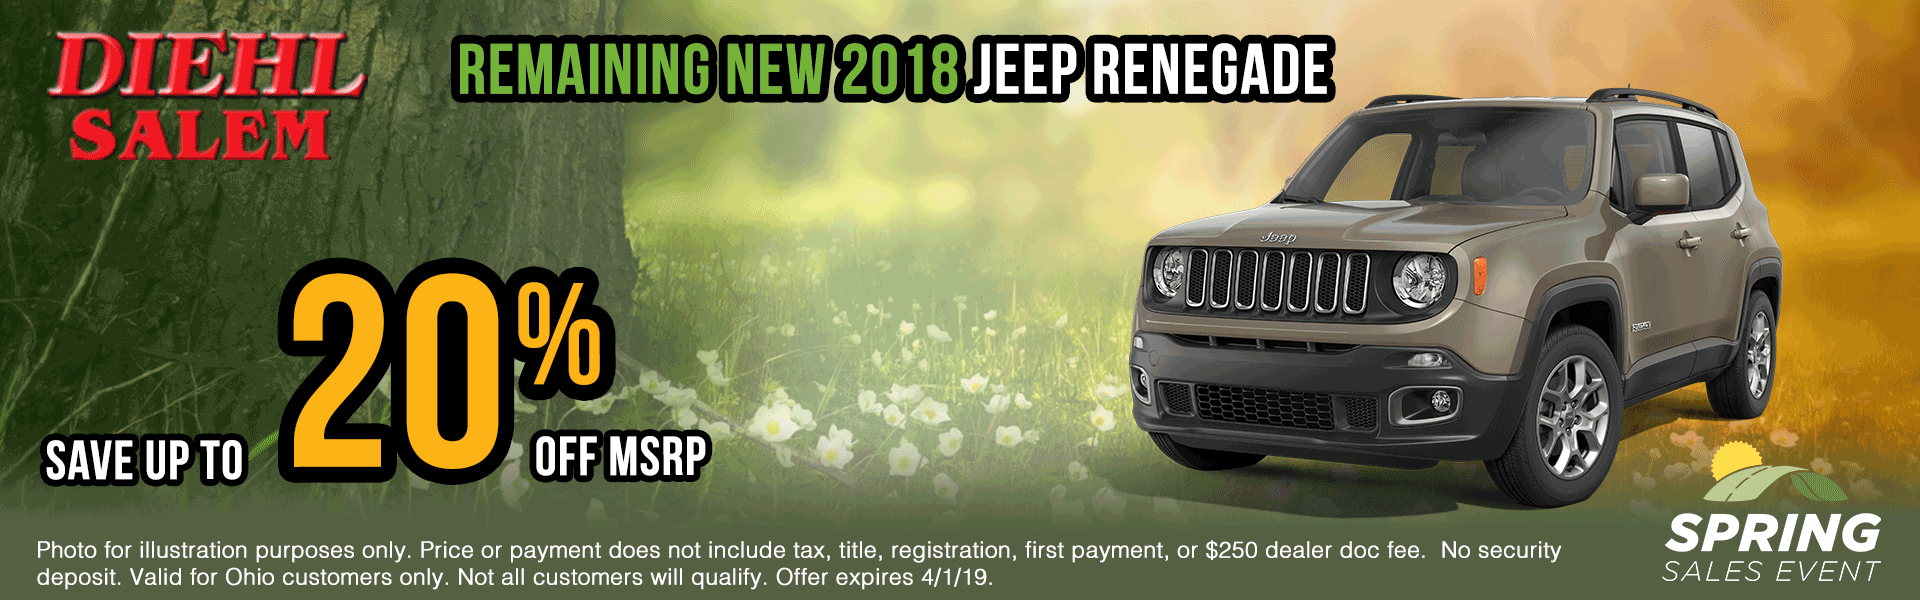 2018-renegades Spring sales event ram truck month jeep specials Chrysler specials ram specials dodge specials mopar specials new vehicle specials Diehl automotive Diehl Salem Diehl of Salem specials Ohio specials